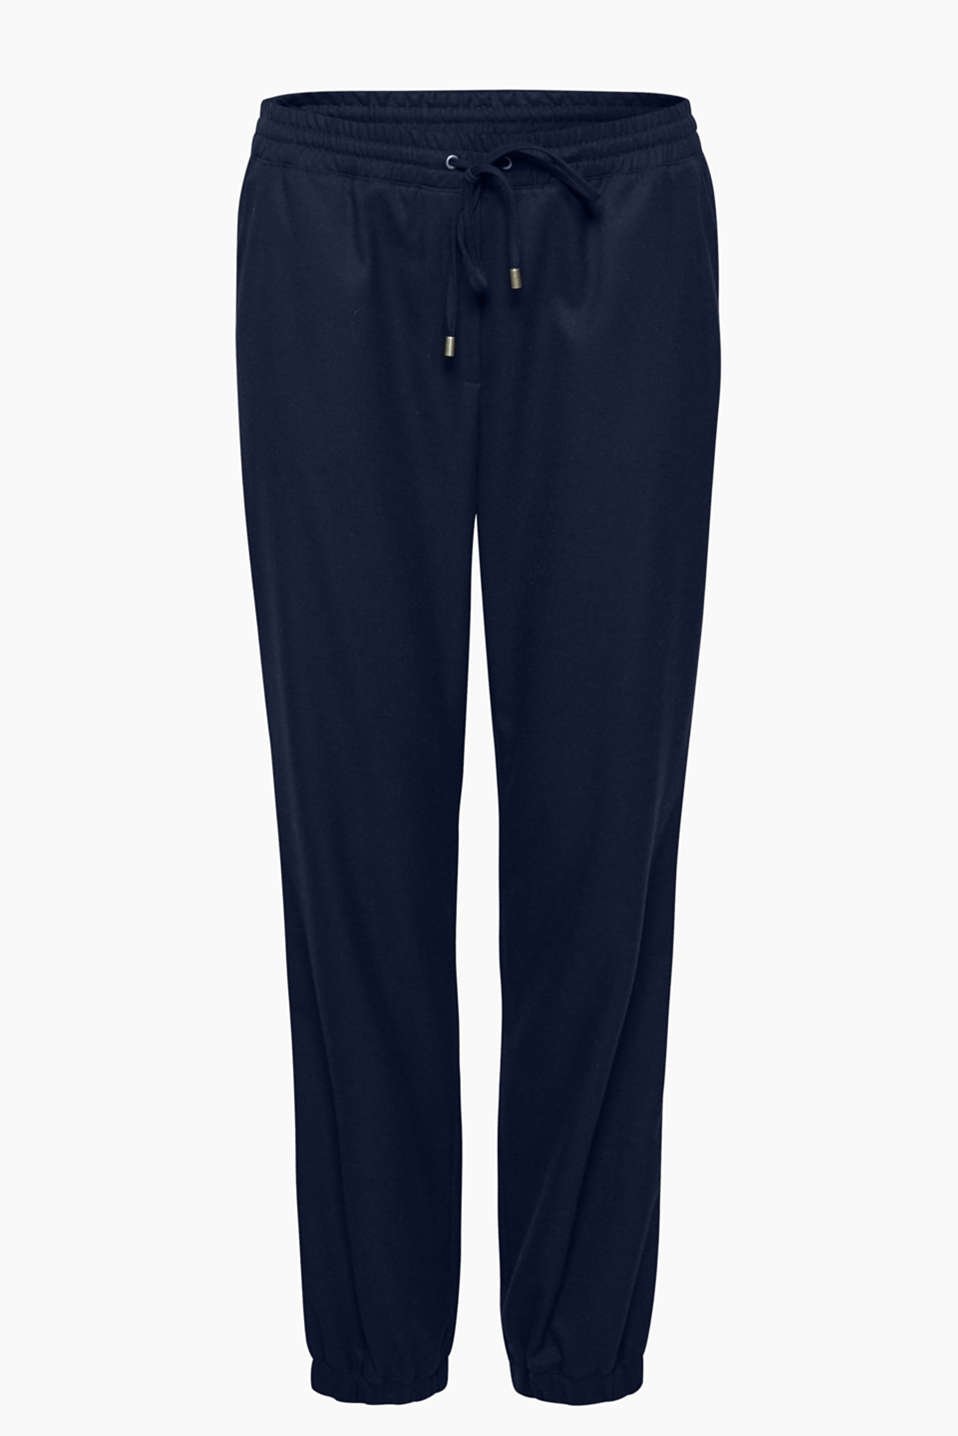 Super cool, super soft and super comfy: trousers in a trendy tracksuit bottom style